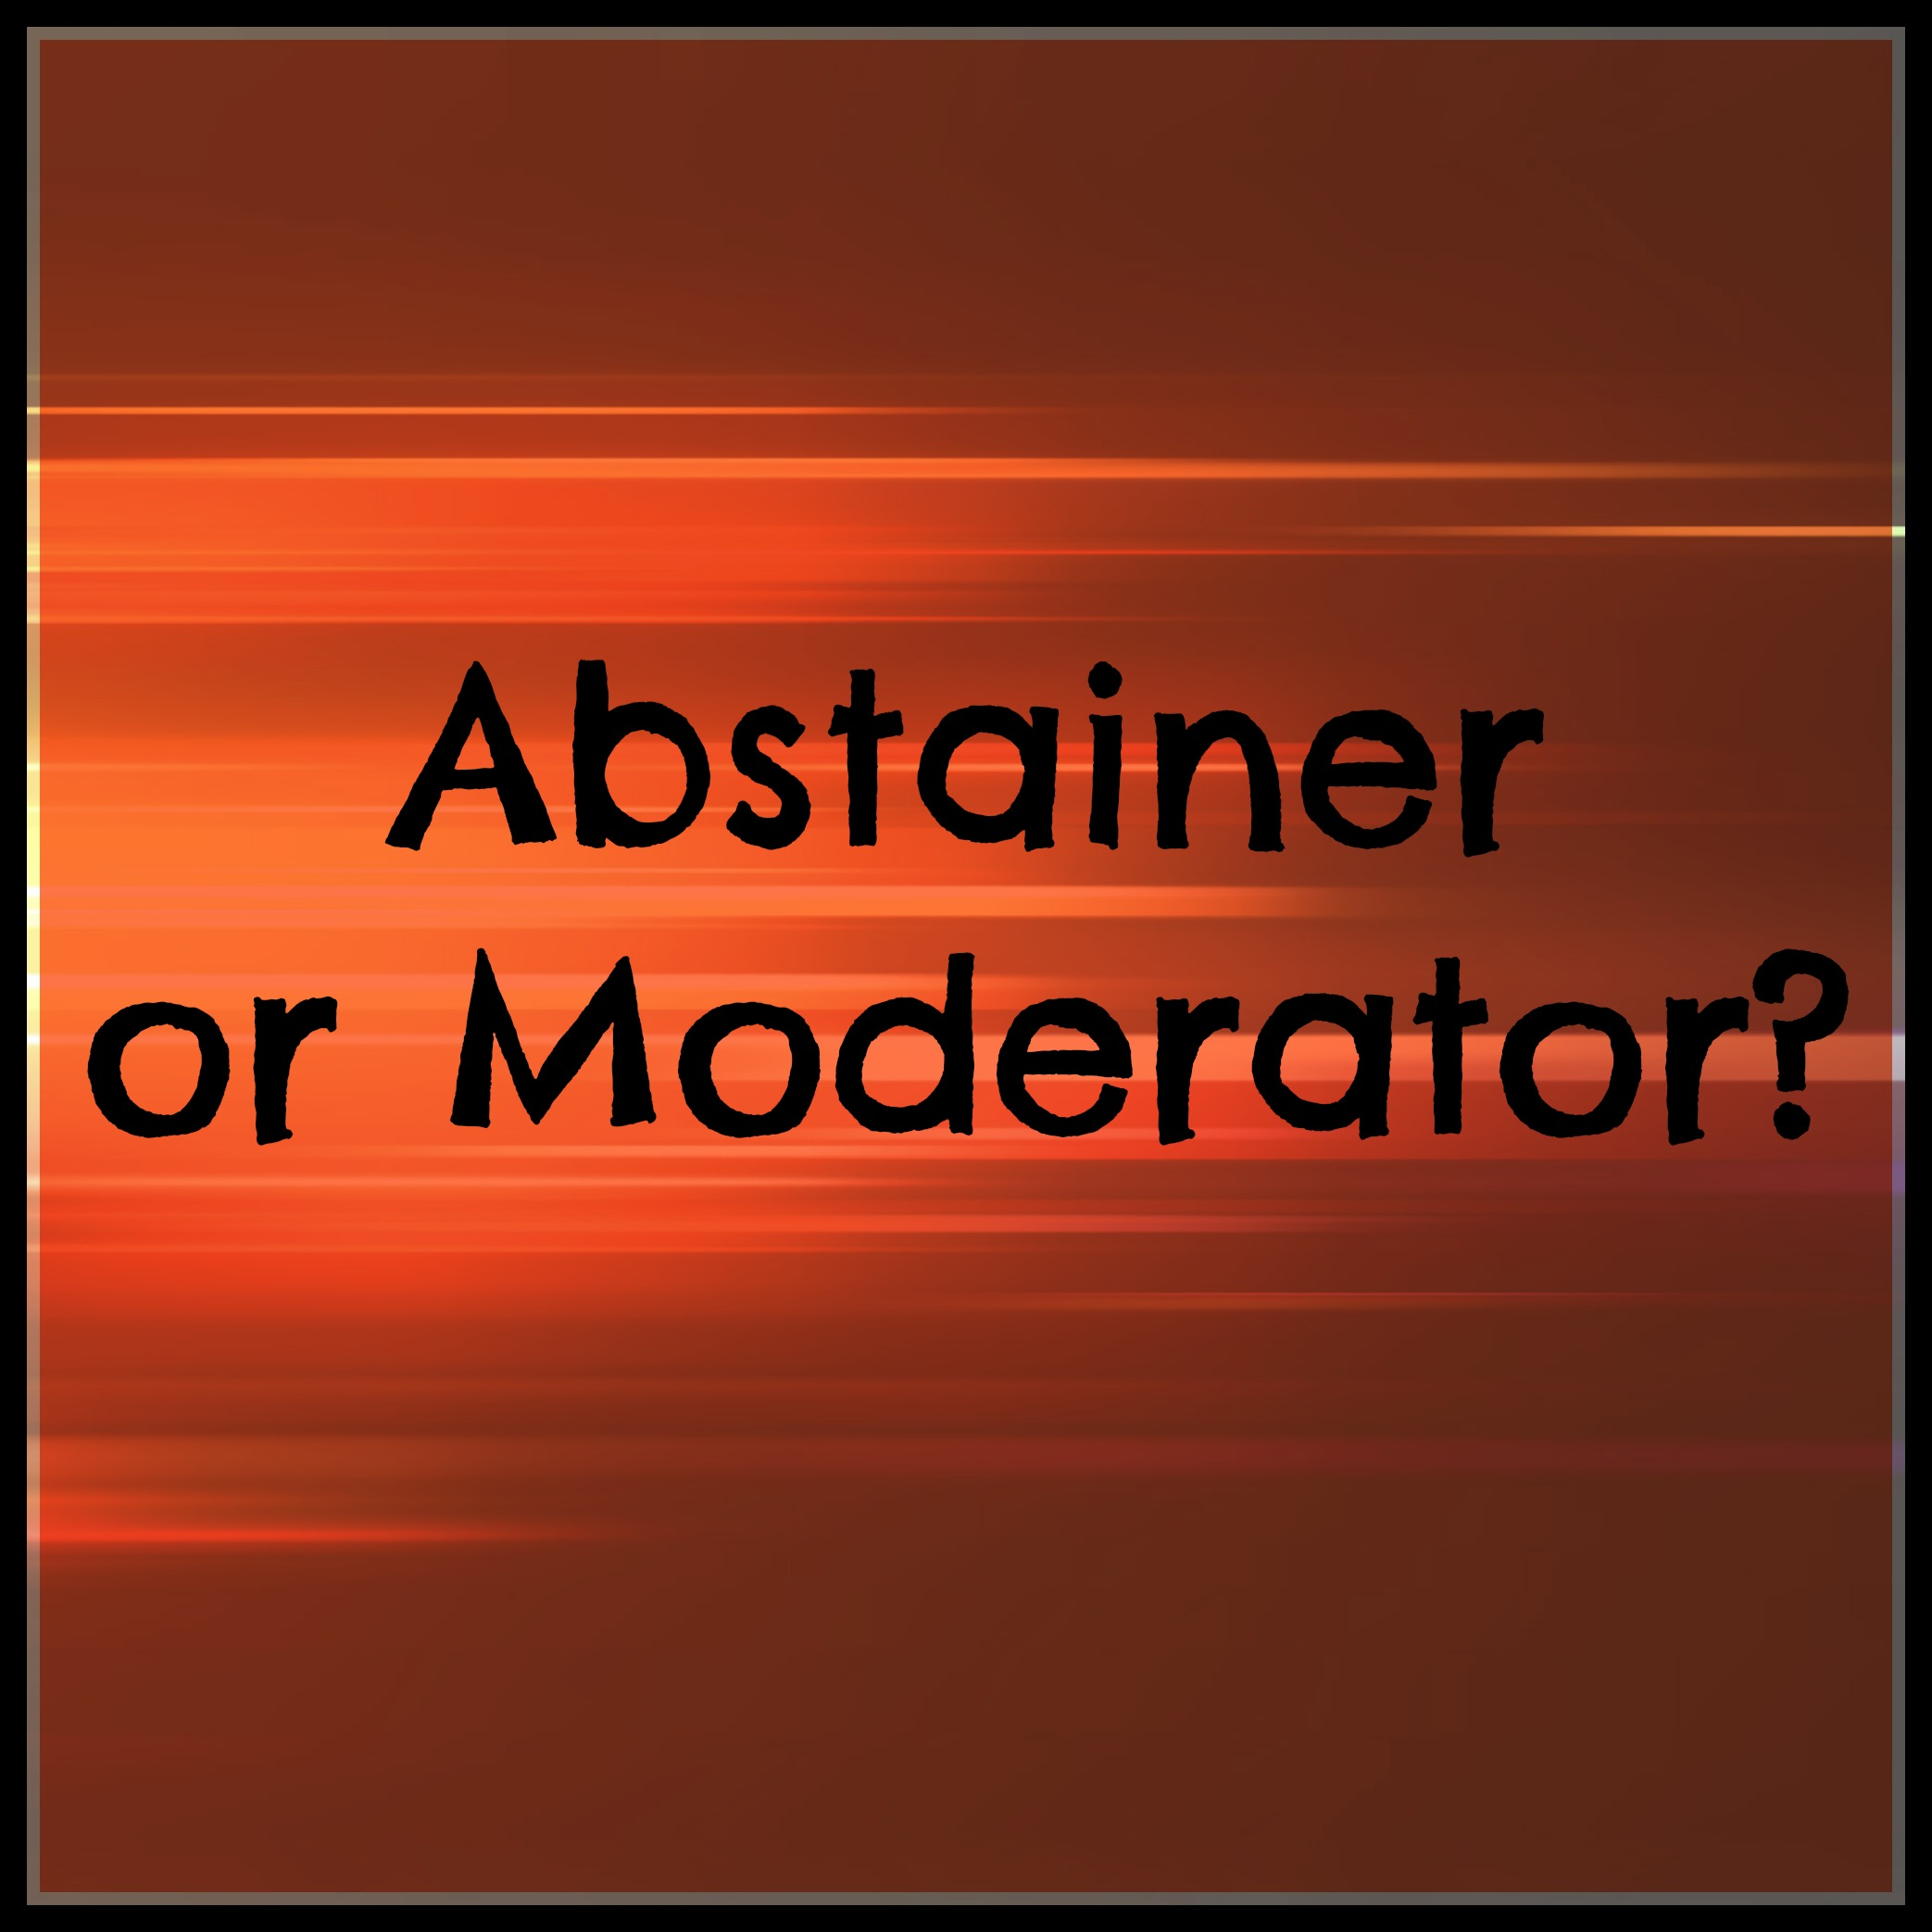 Are You an Abstainer or a Moderator?